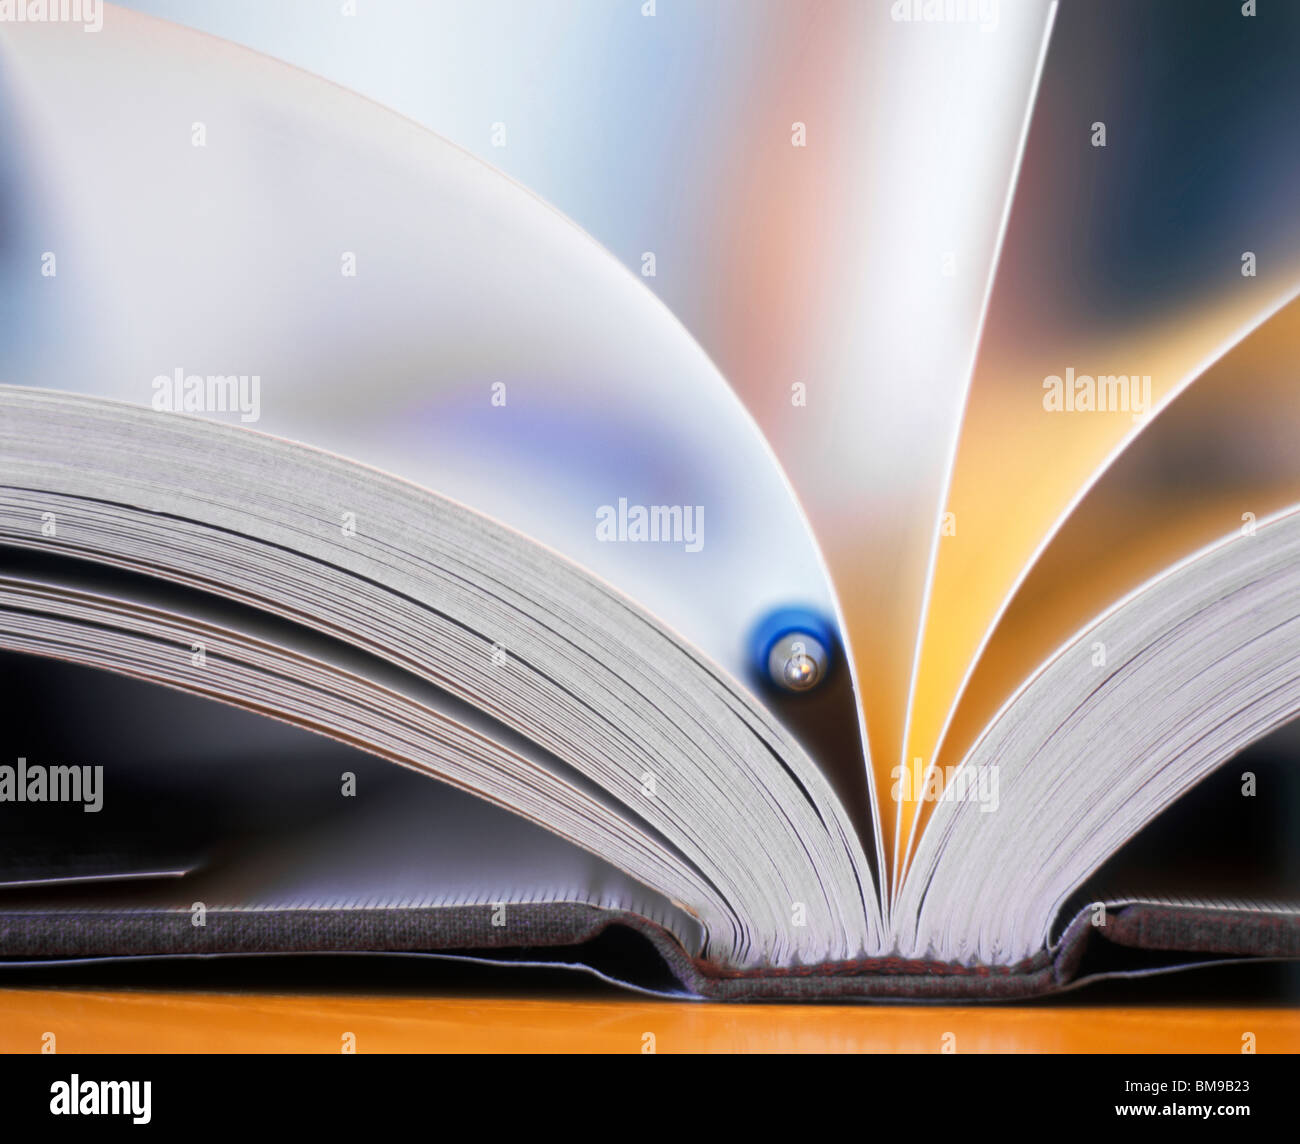 Still-life, An Open, fanned book with pen as Bookmark, close-up - Stock Image